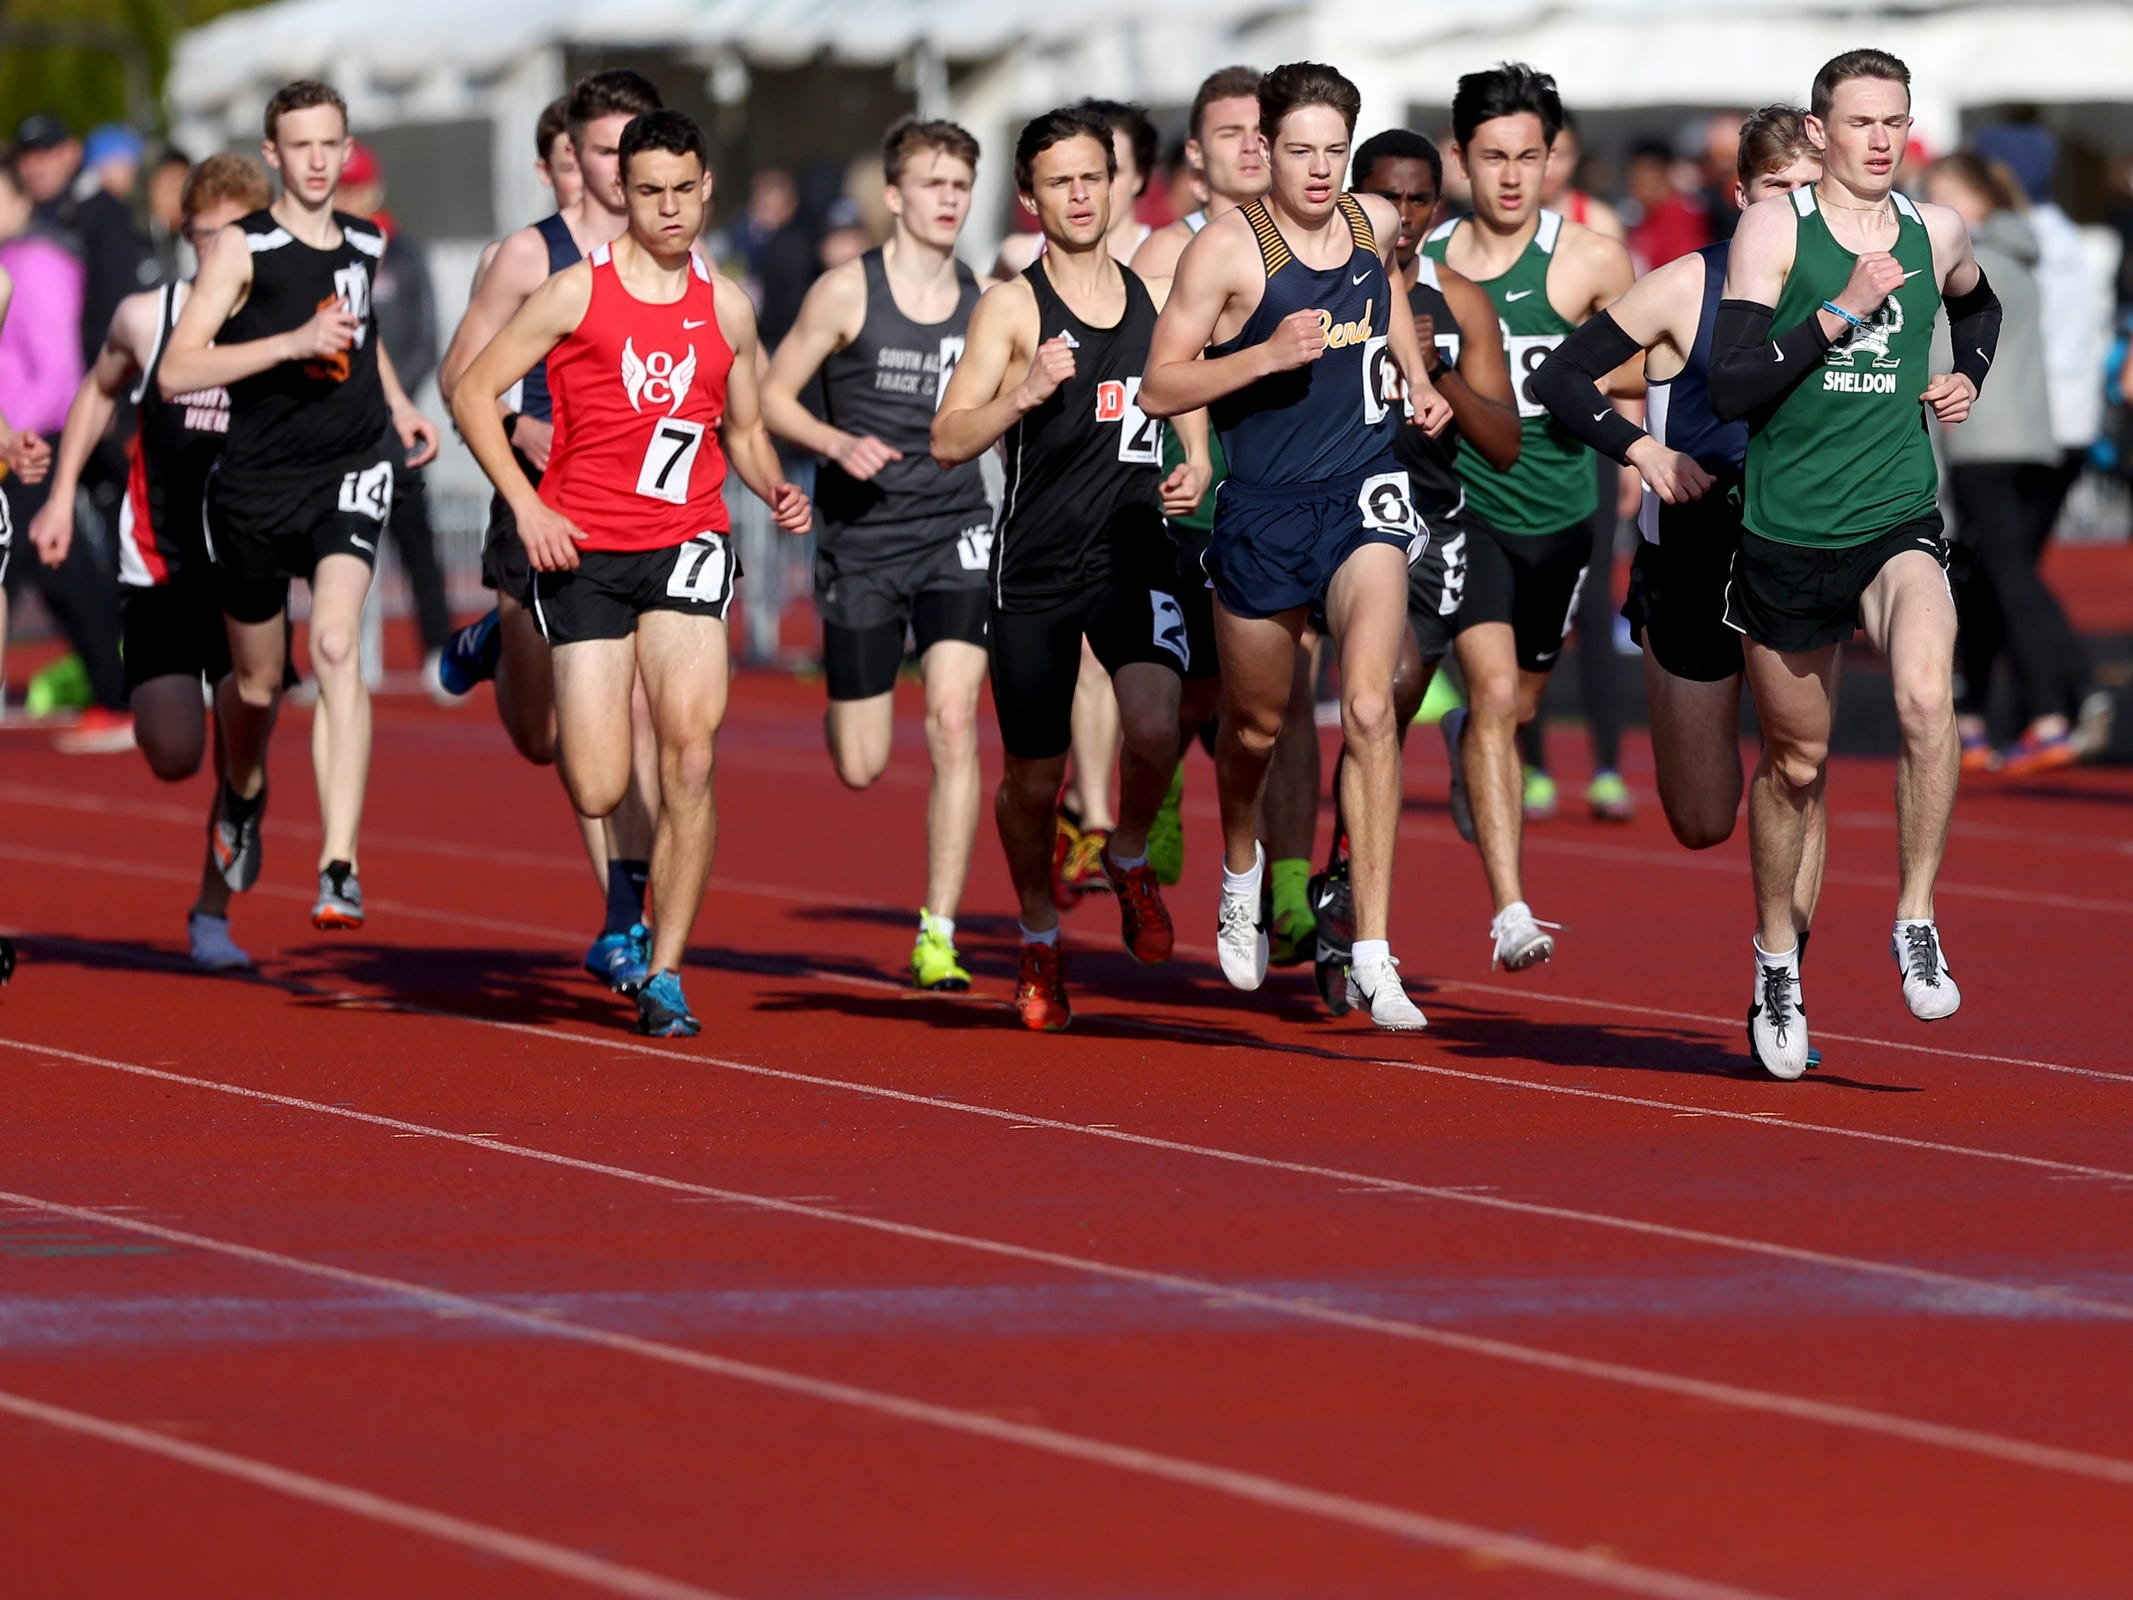 The boys 1500 meter run during the Titan Track Classic high school track and field meet at West Salem High School on April 5, 2019.